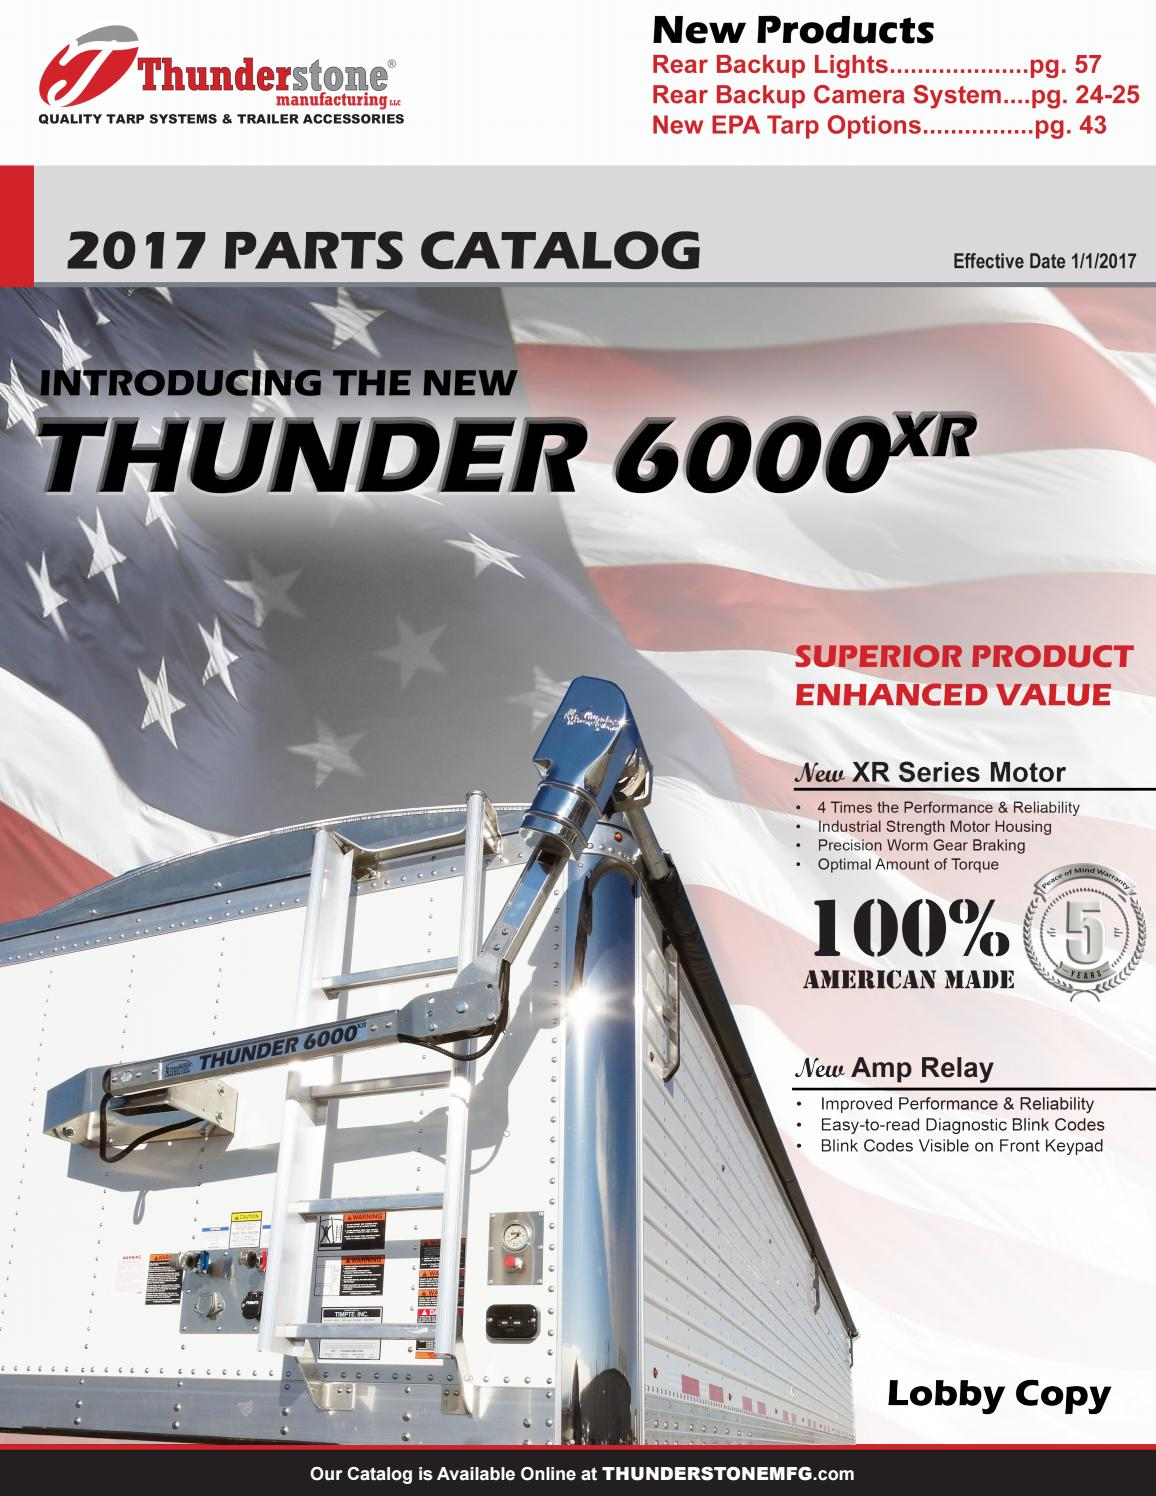 2017 Thunderstone Product Catalog By Timpte Inc Issuu Wilson Hopper Trailer Wiring Diagrams